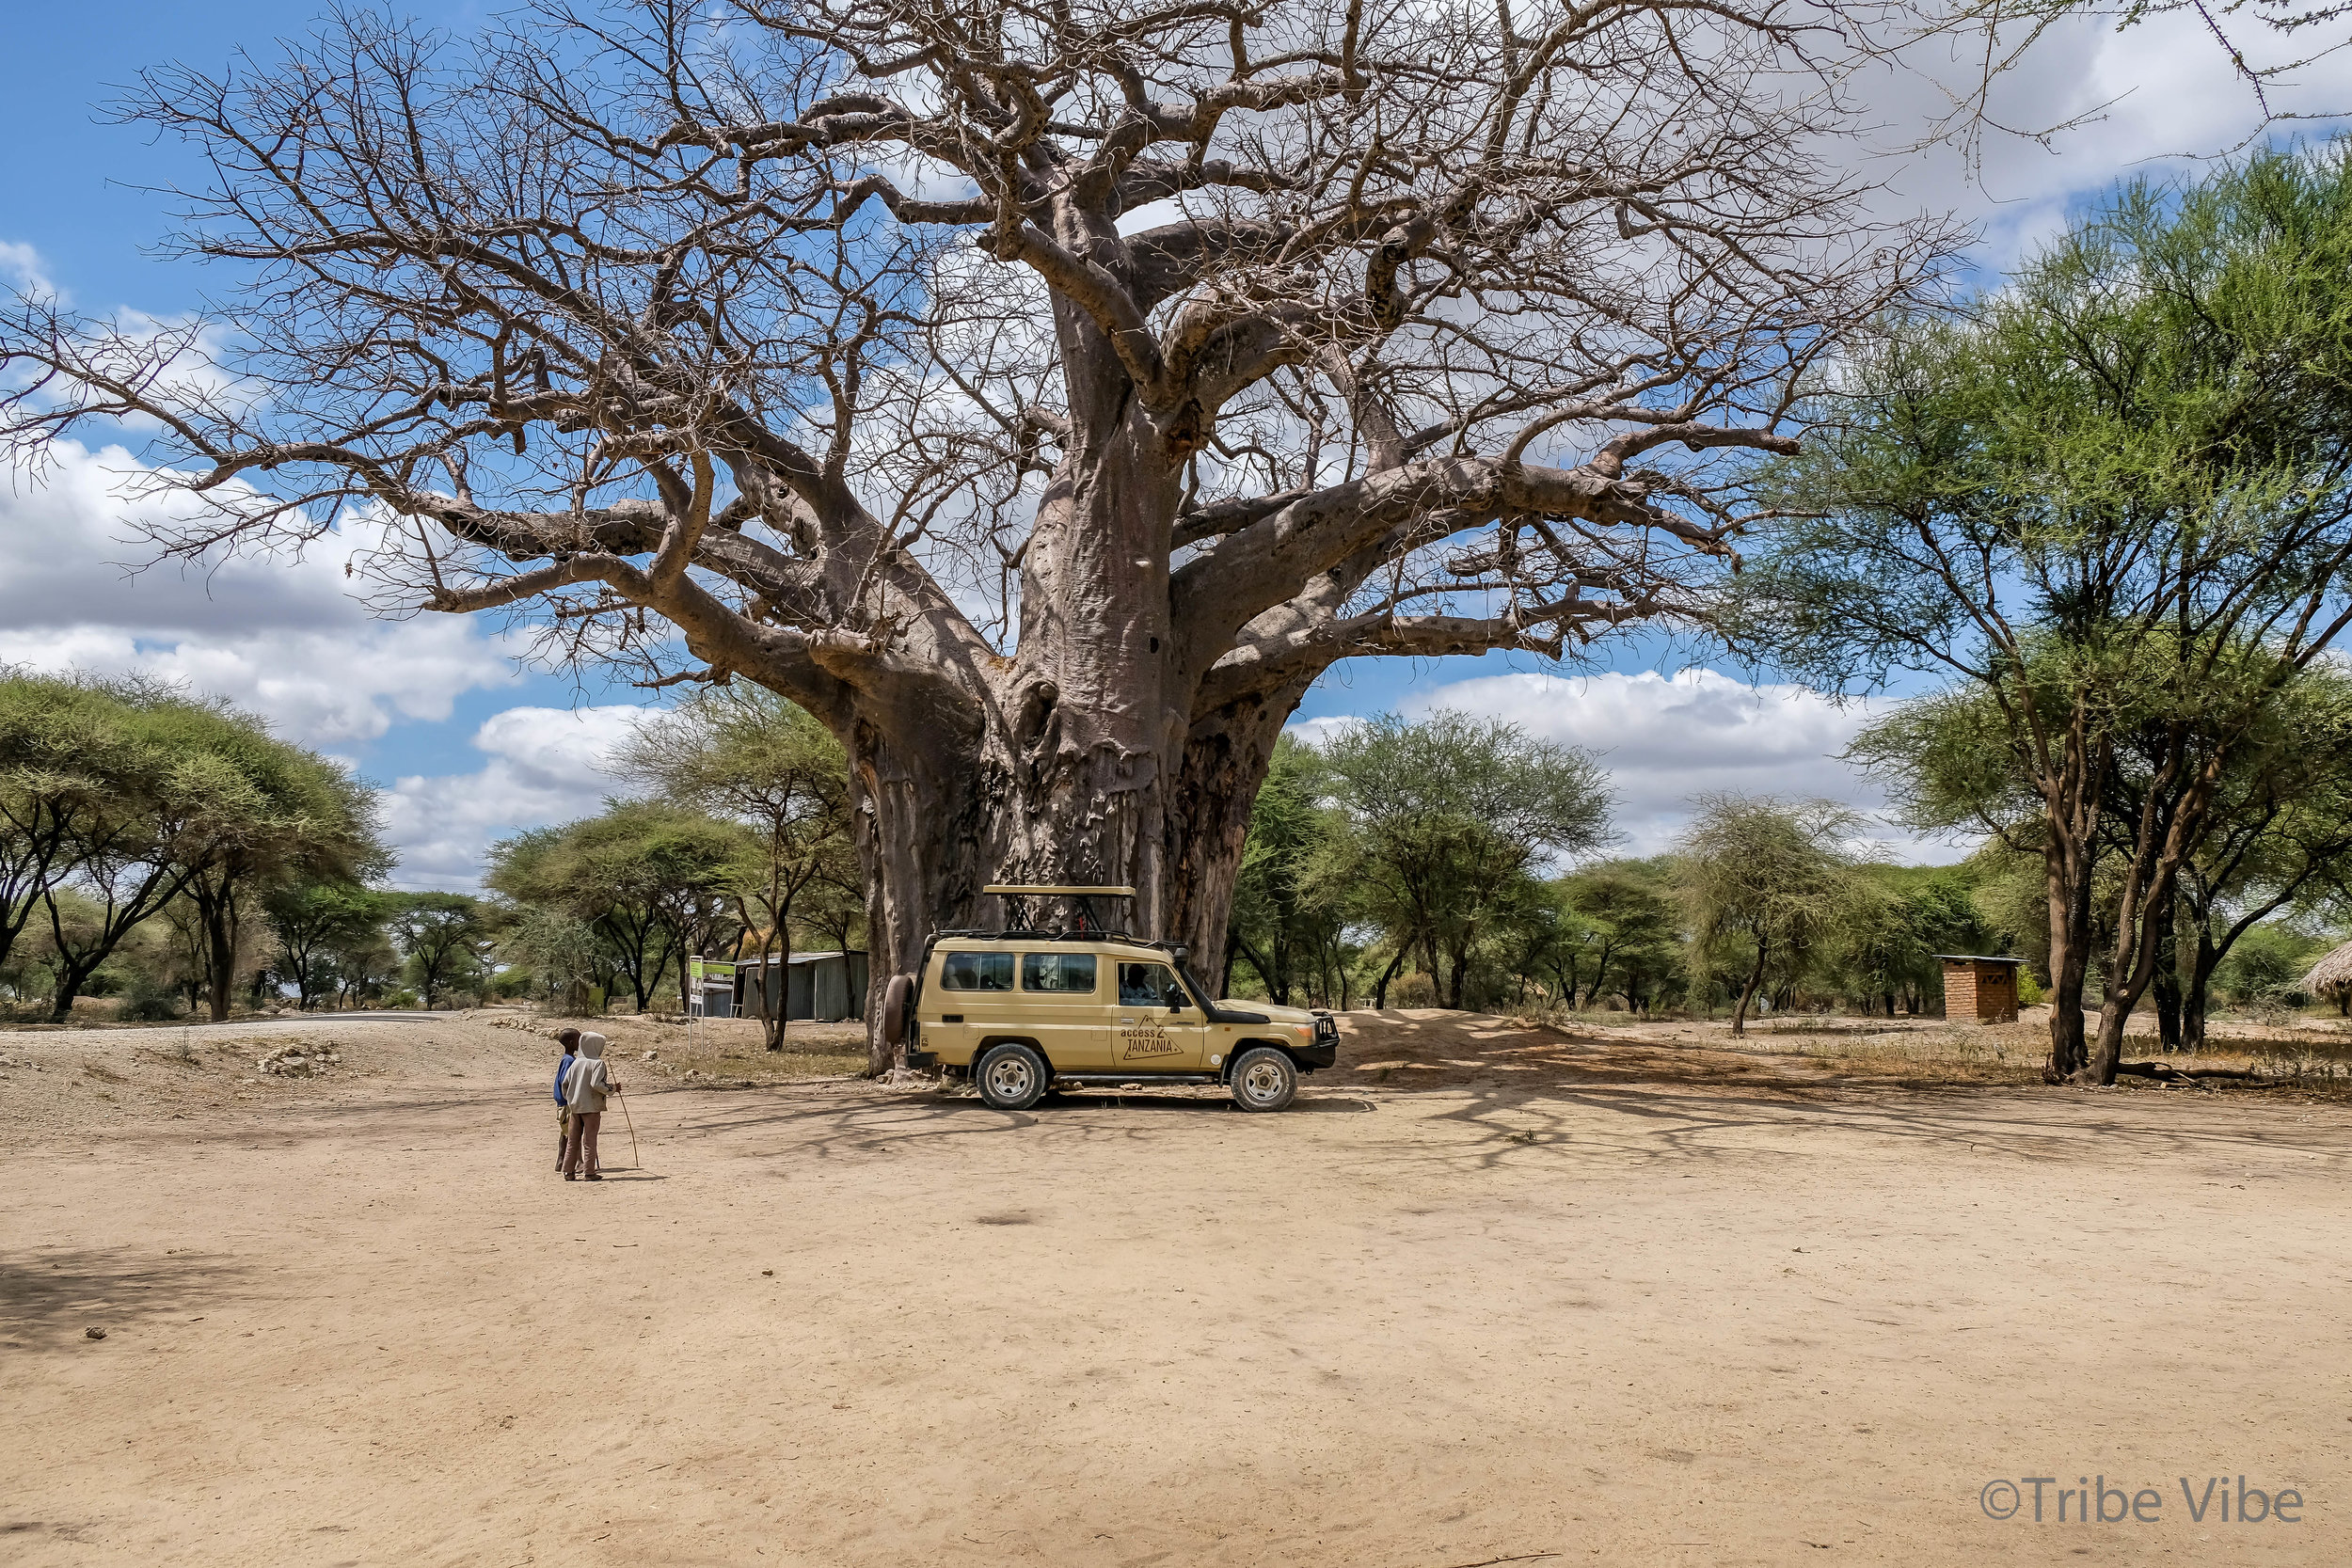 The massive Baobab tree at the entrance to our Masai Boma